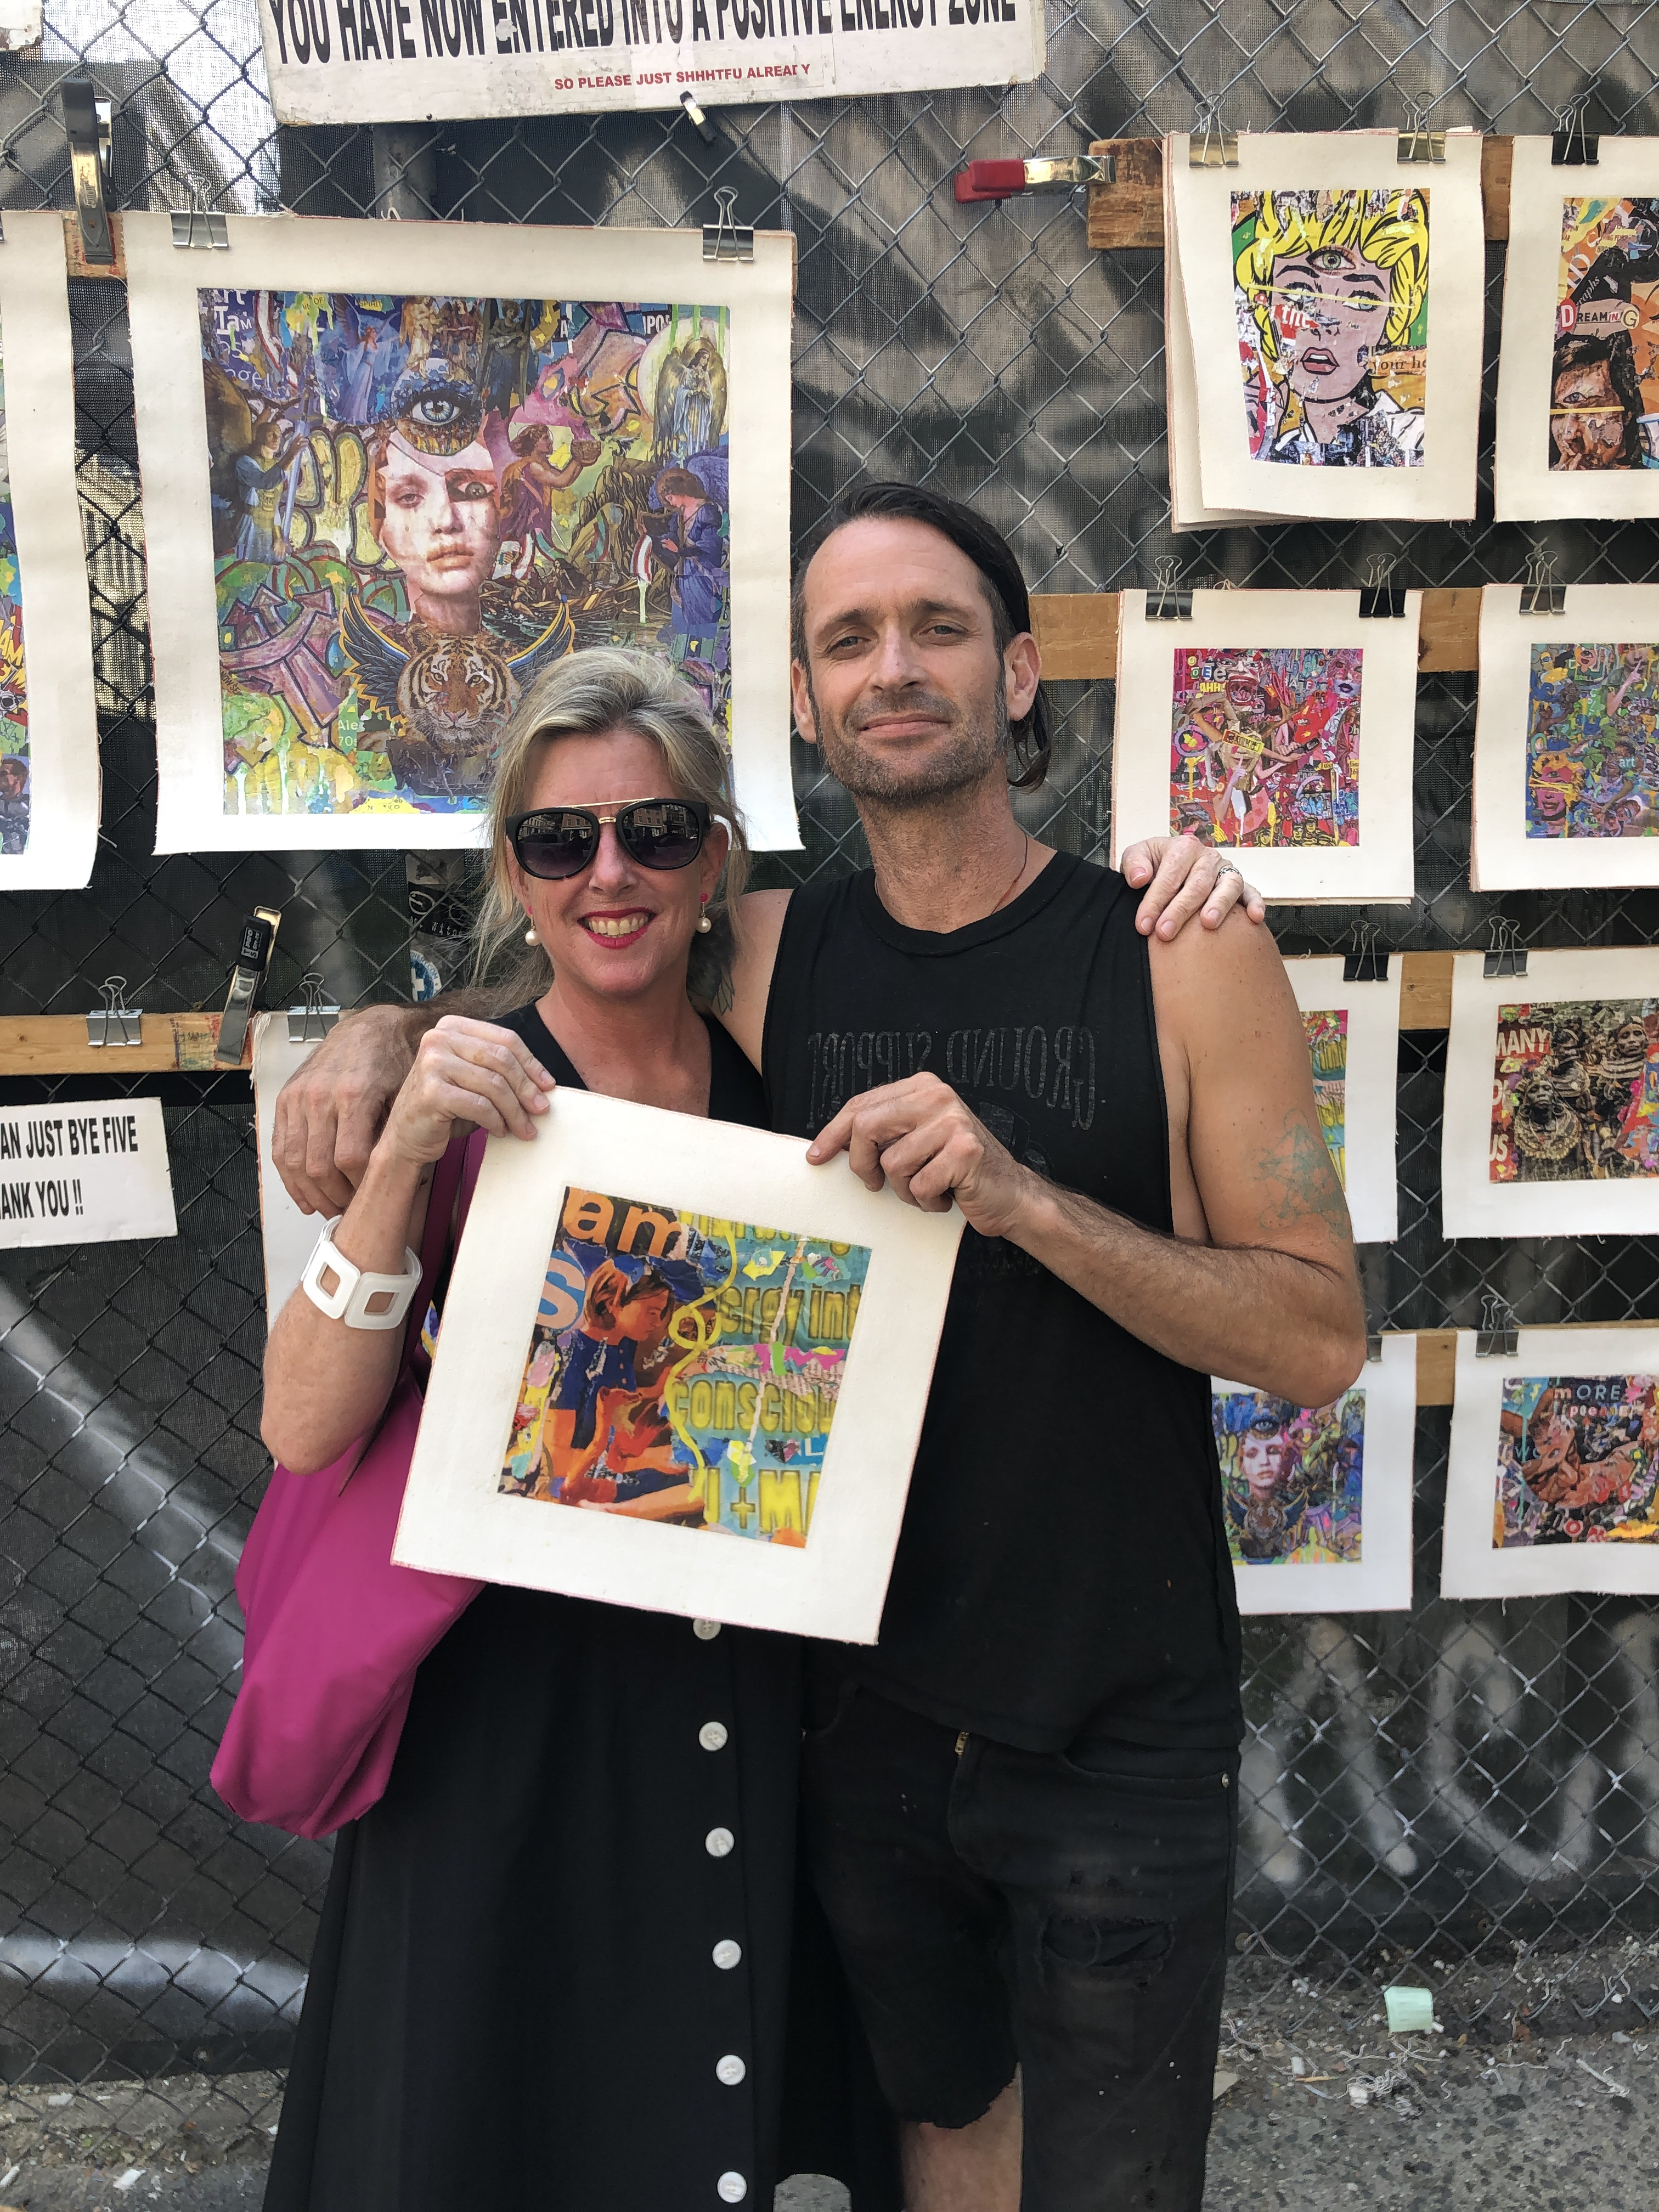 Buying street art in NYC